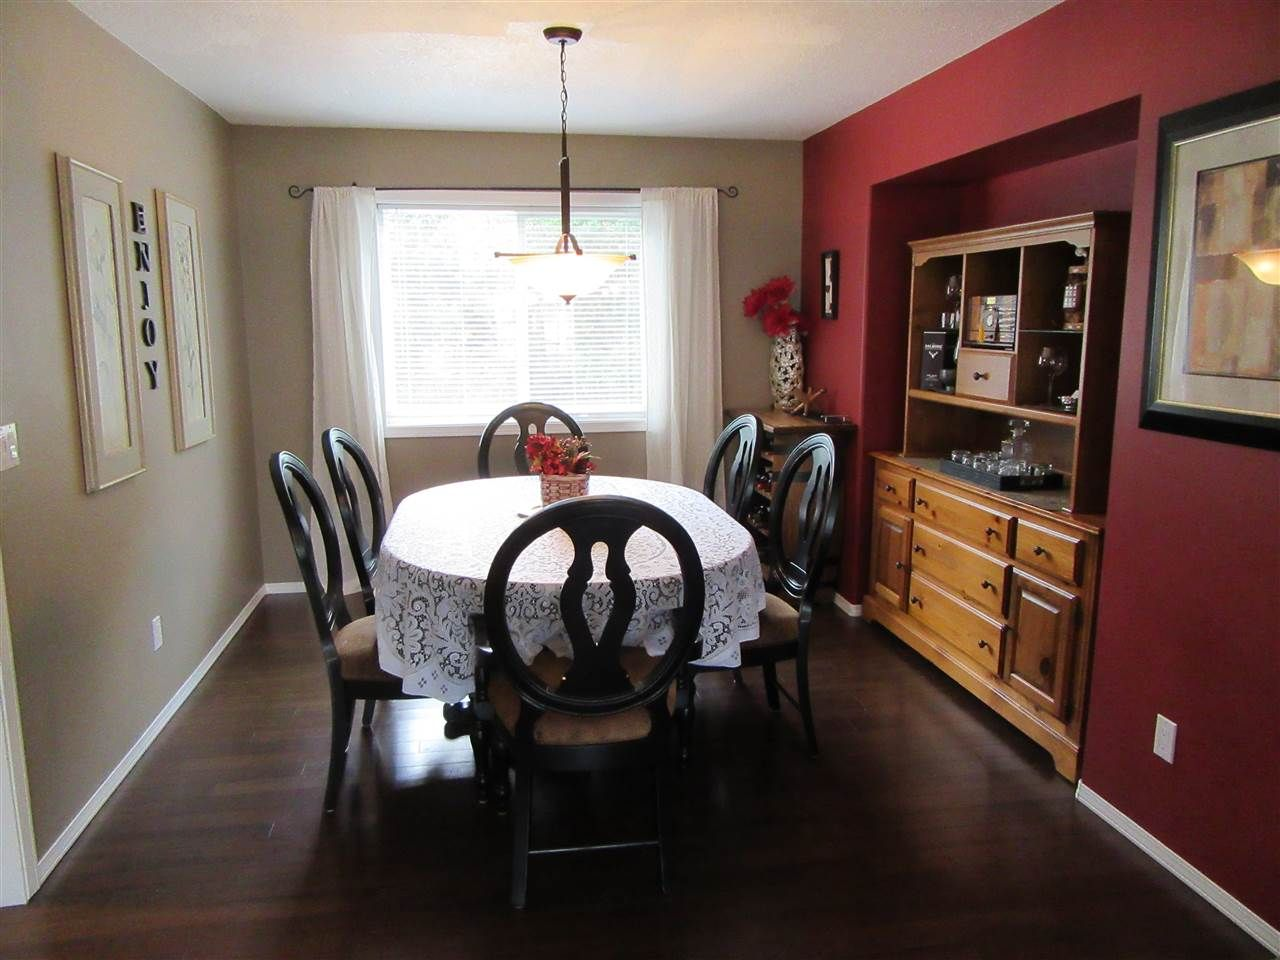 """Photo 14: Photos: 4305 FOSTER Road in Prince George: Charella/Starlane House for sale in """"CHARELLA/STARLANE"""" (PG City South (Zone 74))  : MLS®# R2499513"""